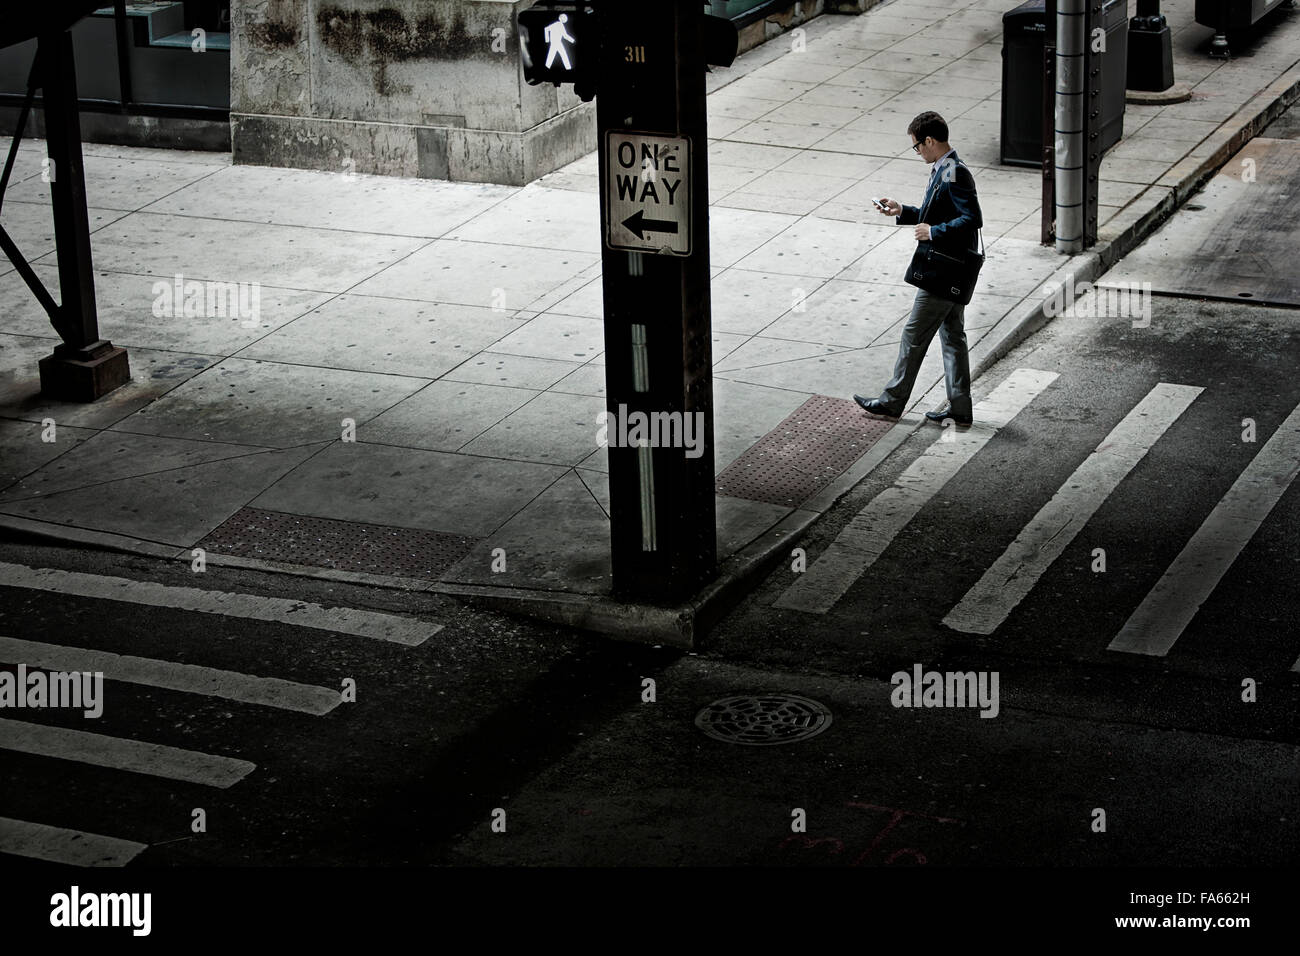 A man walking across a street crossing, looking at a phone in his hand. - Stock Image